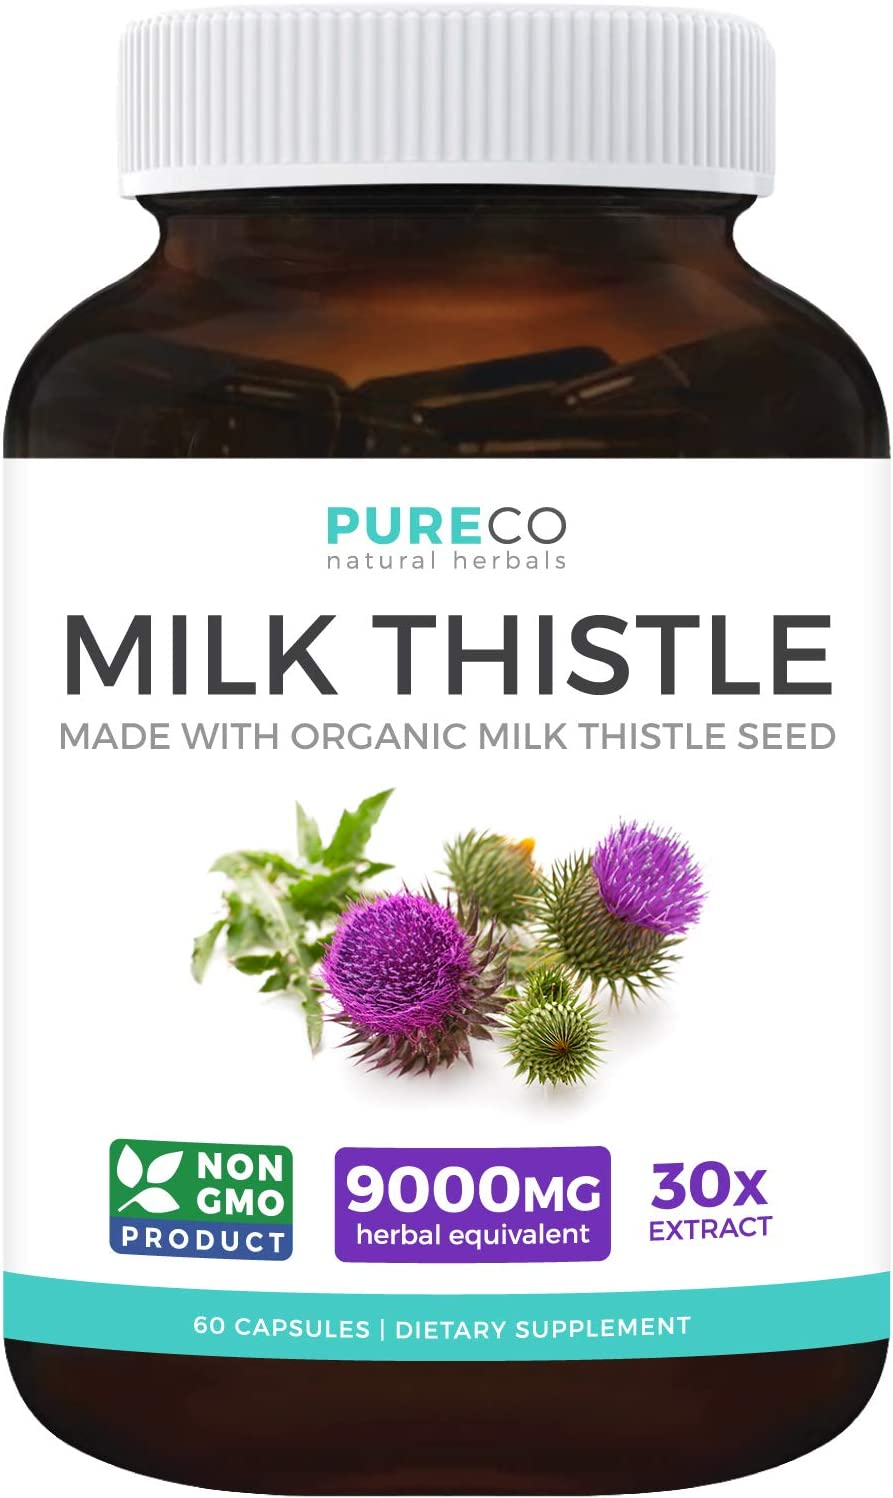 Amazon.com: Organic Milk Thistle Extract (80% Silymarin) Super-Concentrated  for 9,000mg of Milk Thistle Seed Power: Supports Liver Cleanse, Detox &  Health - Vegan - 60 Capsules (Pills): Health & Personal Care